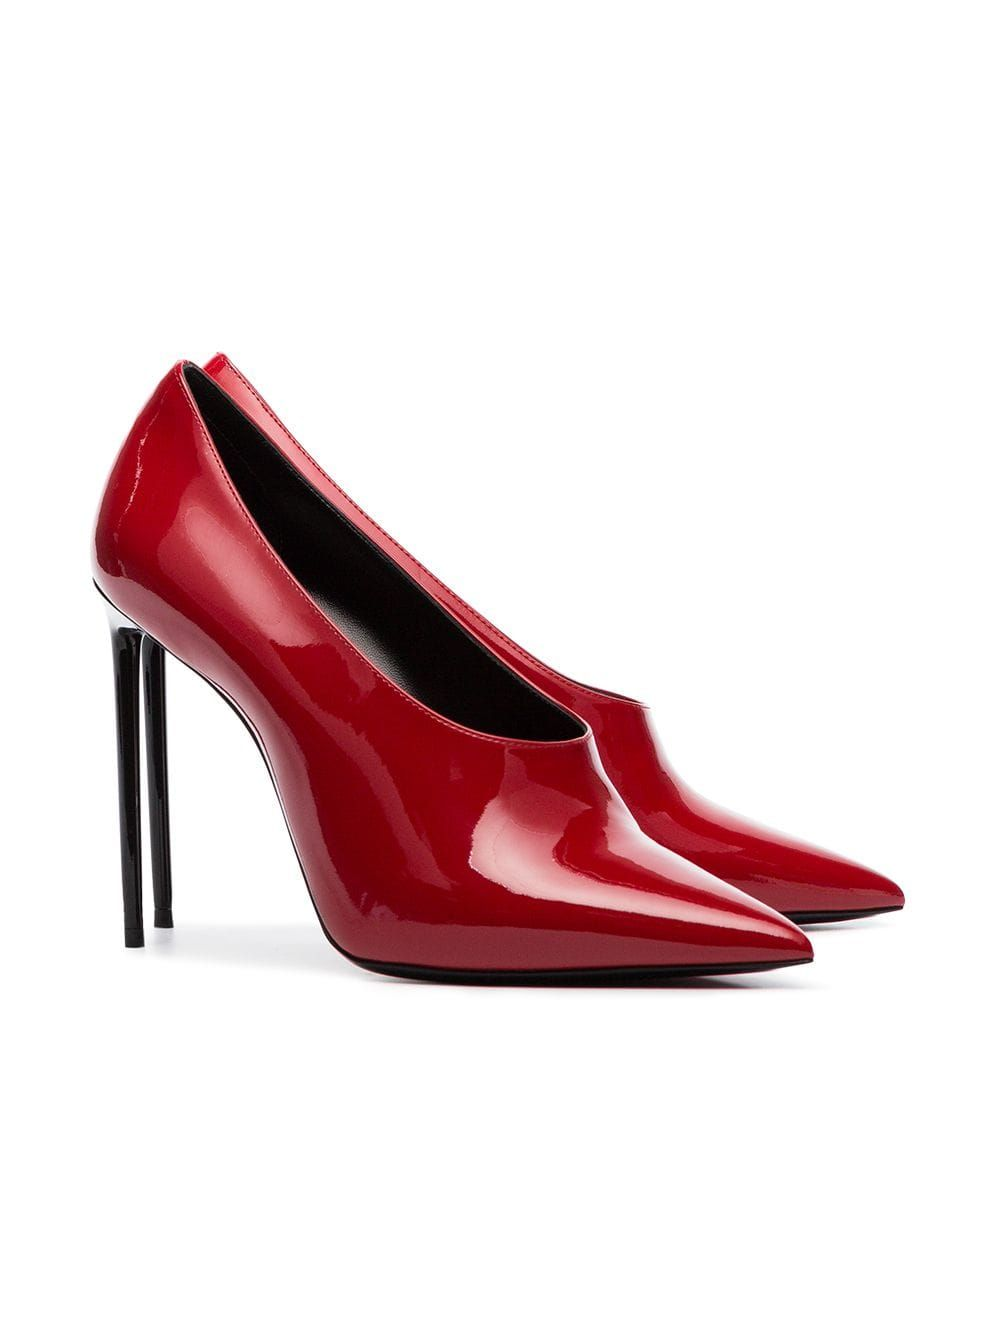 Saint Laurent Teddy 105 Patent Leather Pumps in 2019  eccfd3252dc2